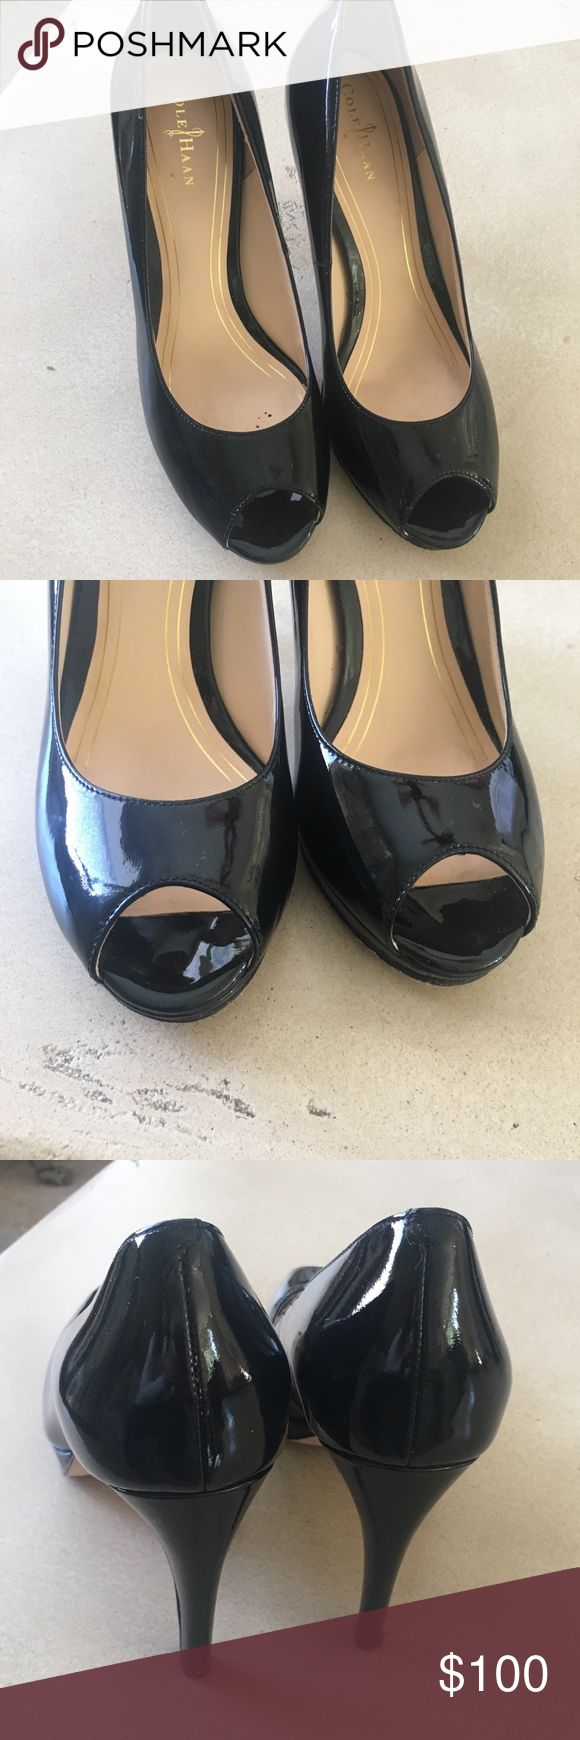 """Cole Haan Nike Air leather pumps Cole Haan Chelsea Nike Air peep toe  Patent Leather black pumps 3,75"""" heel Worn only once, great condition. I'm only selling because should have purchased a larger size. Cole Haan Shoes"""